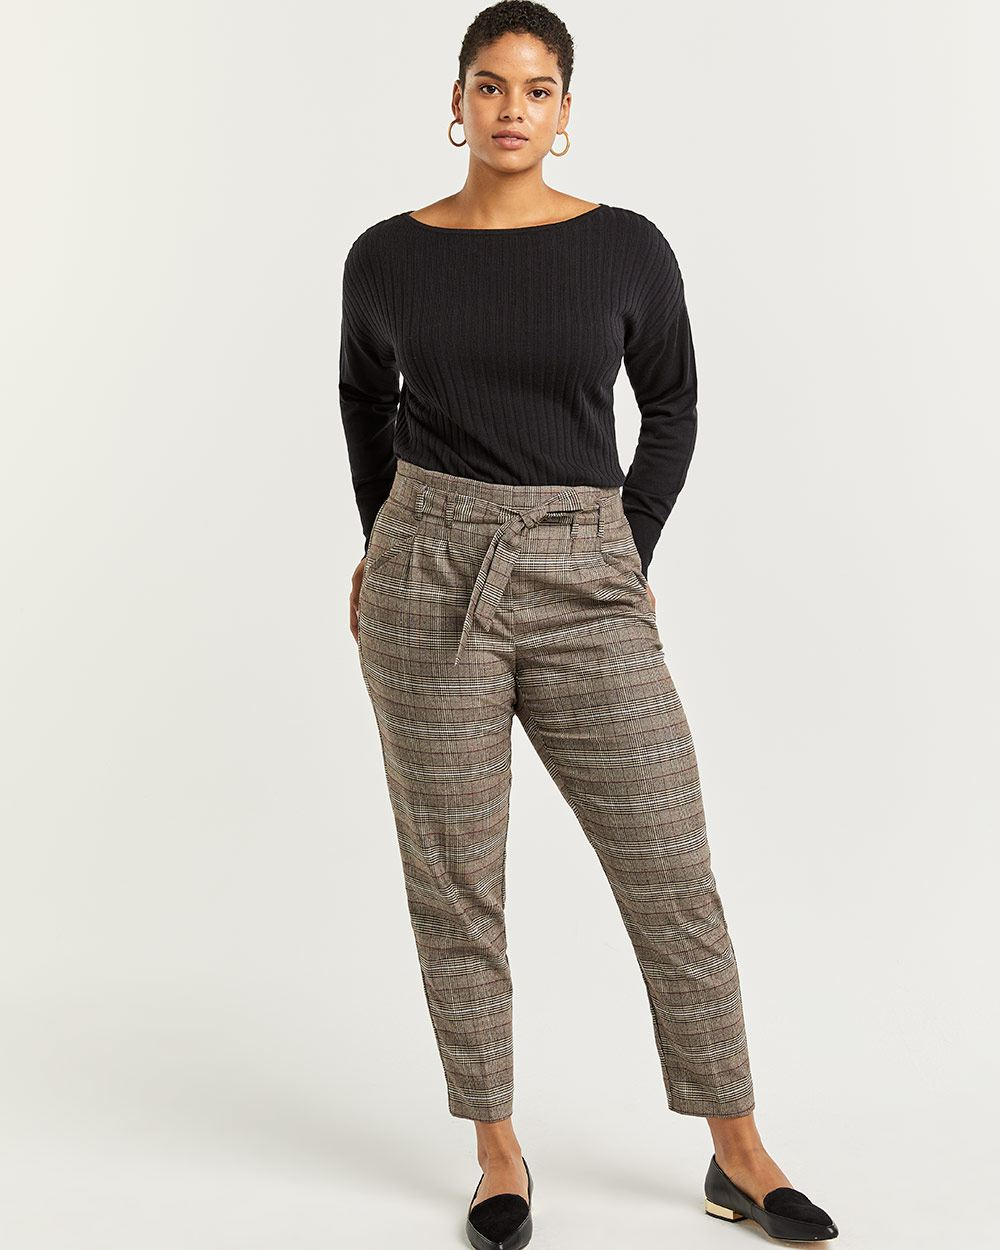 Glen Plaid Slim Pull On Paperbag Pants